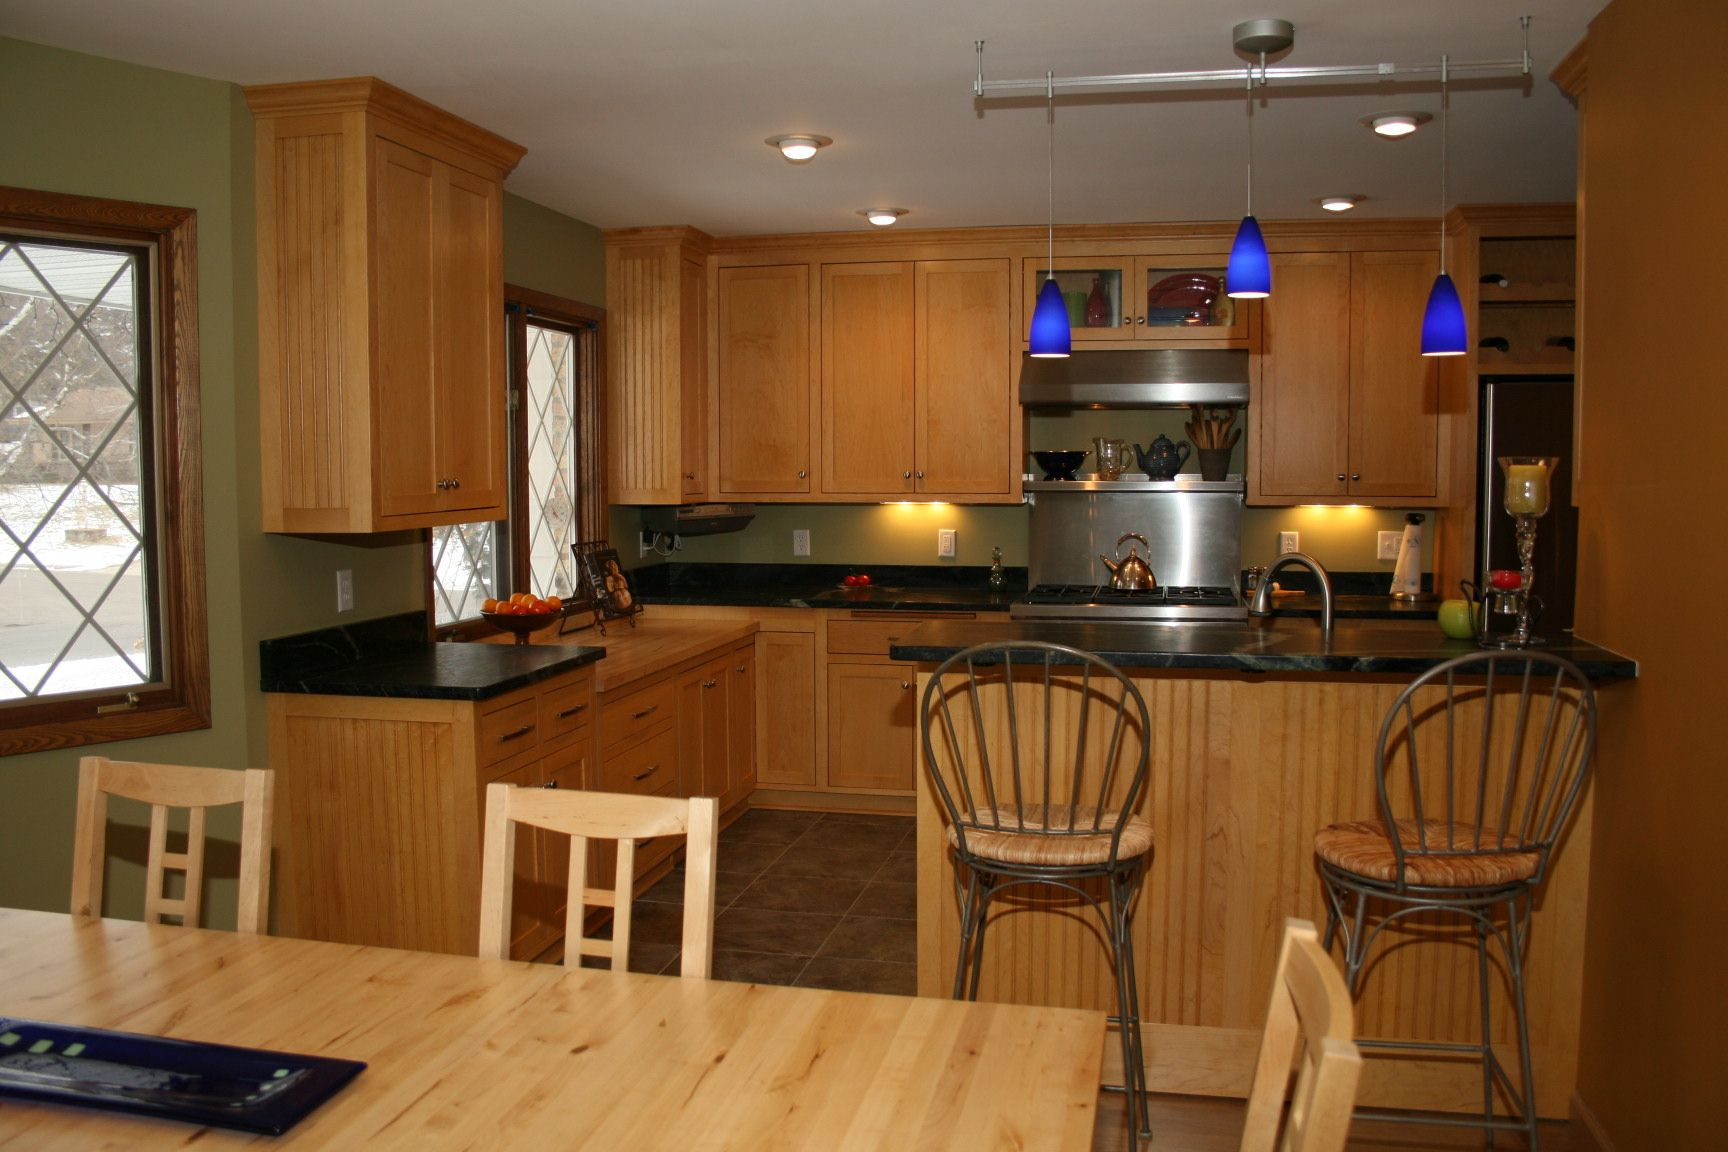 Kitchens With Black Granite Counter Tops And Maple ... on Black Granite Countertops With Maple Cabinets  id=18860